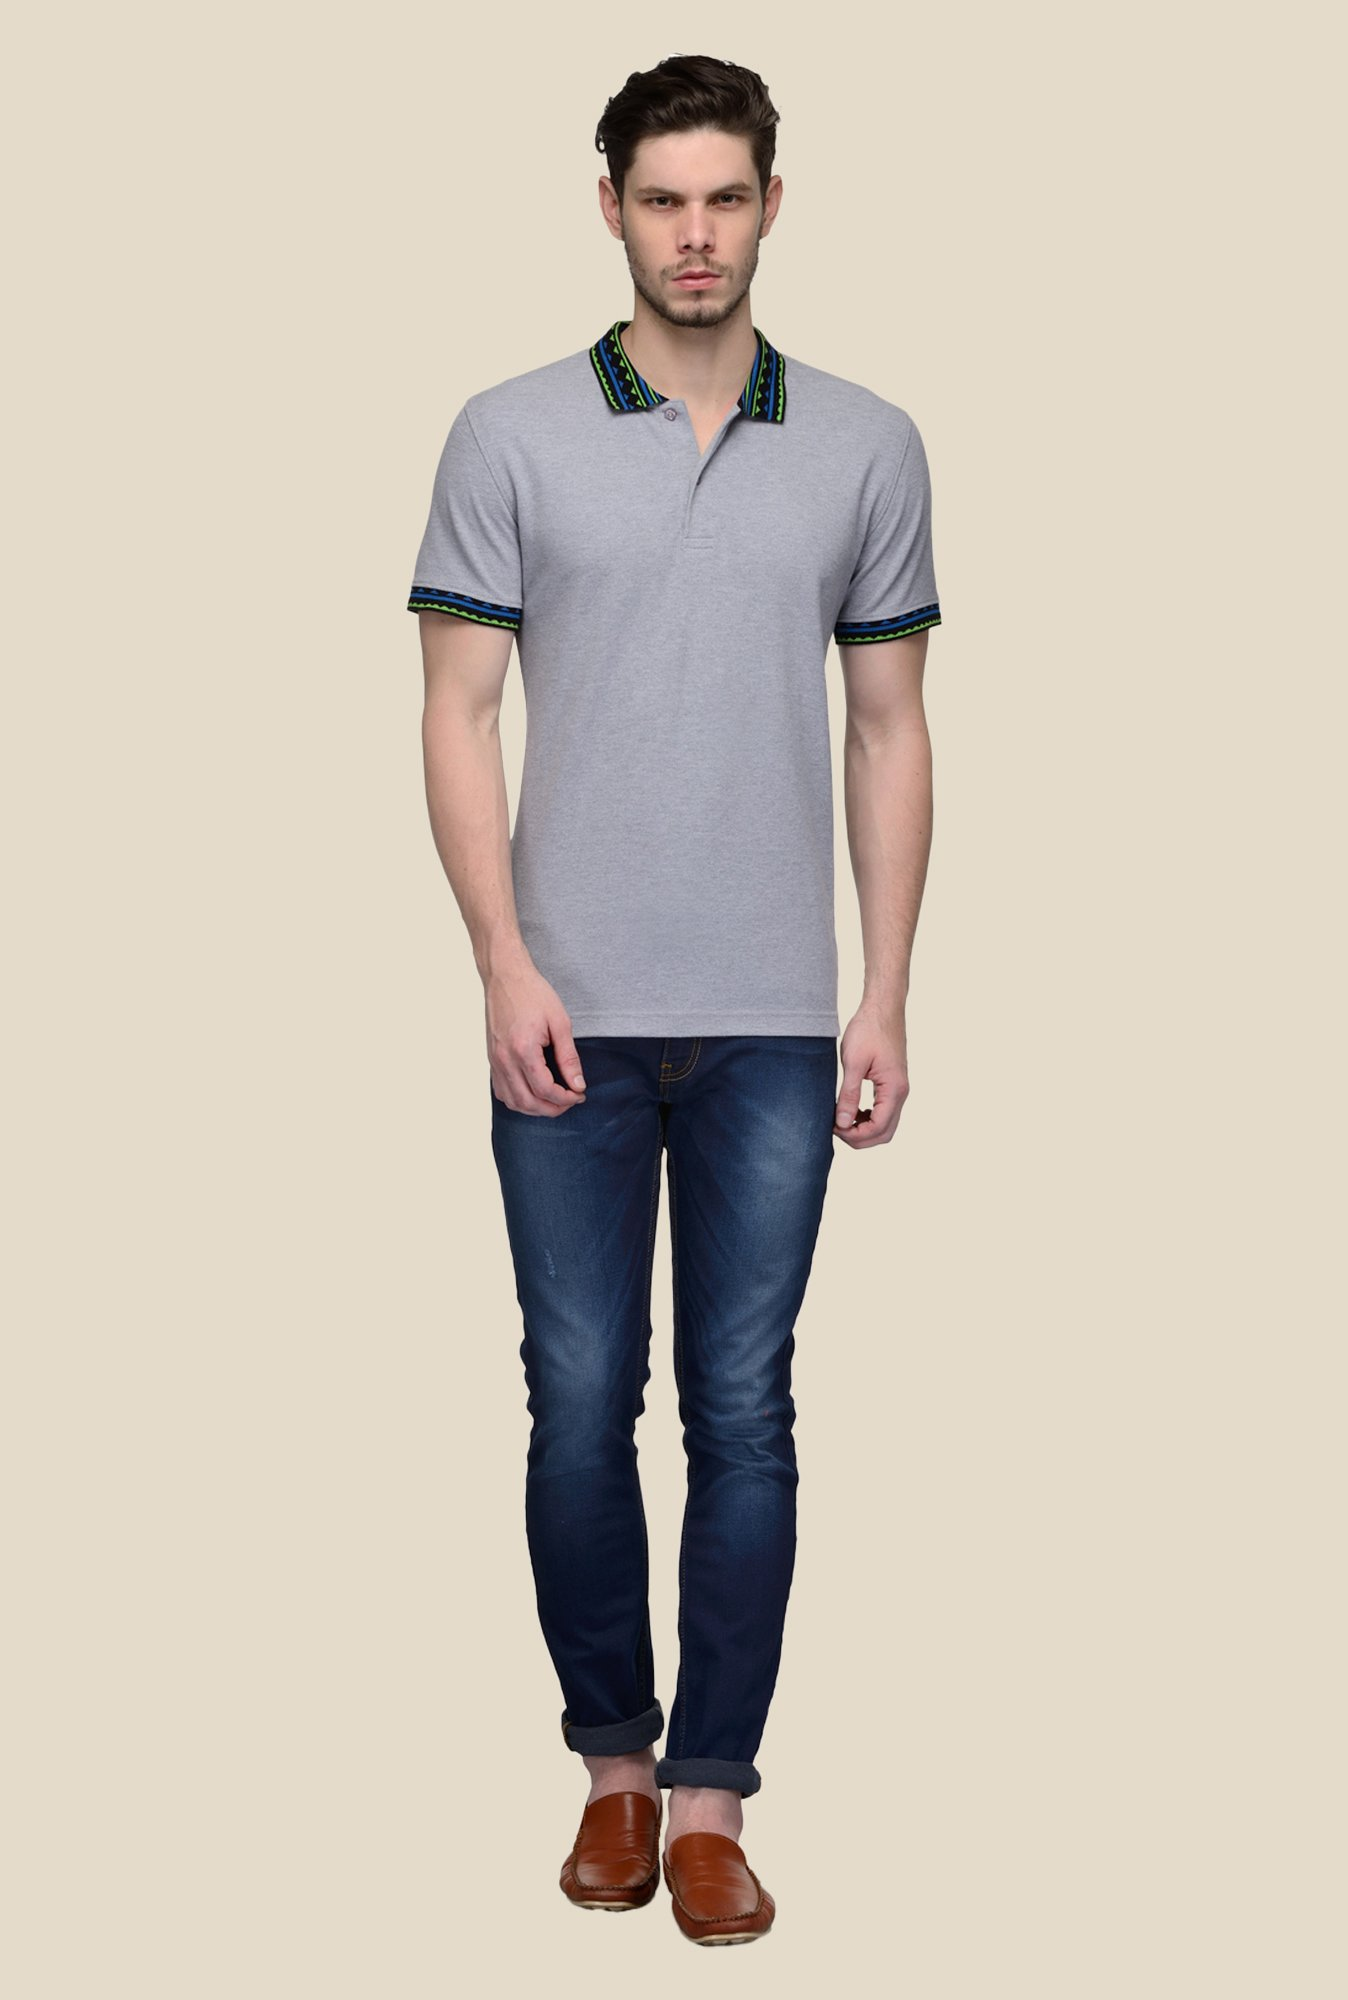 United Colors of Benetton Grey Polo T-shirt